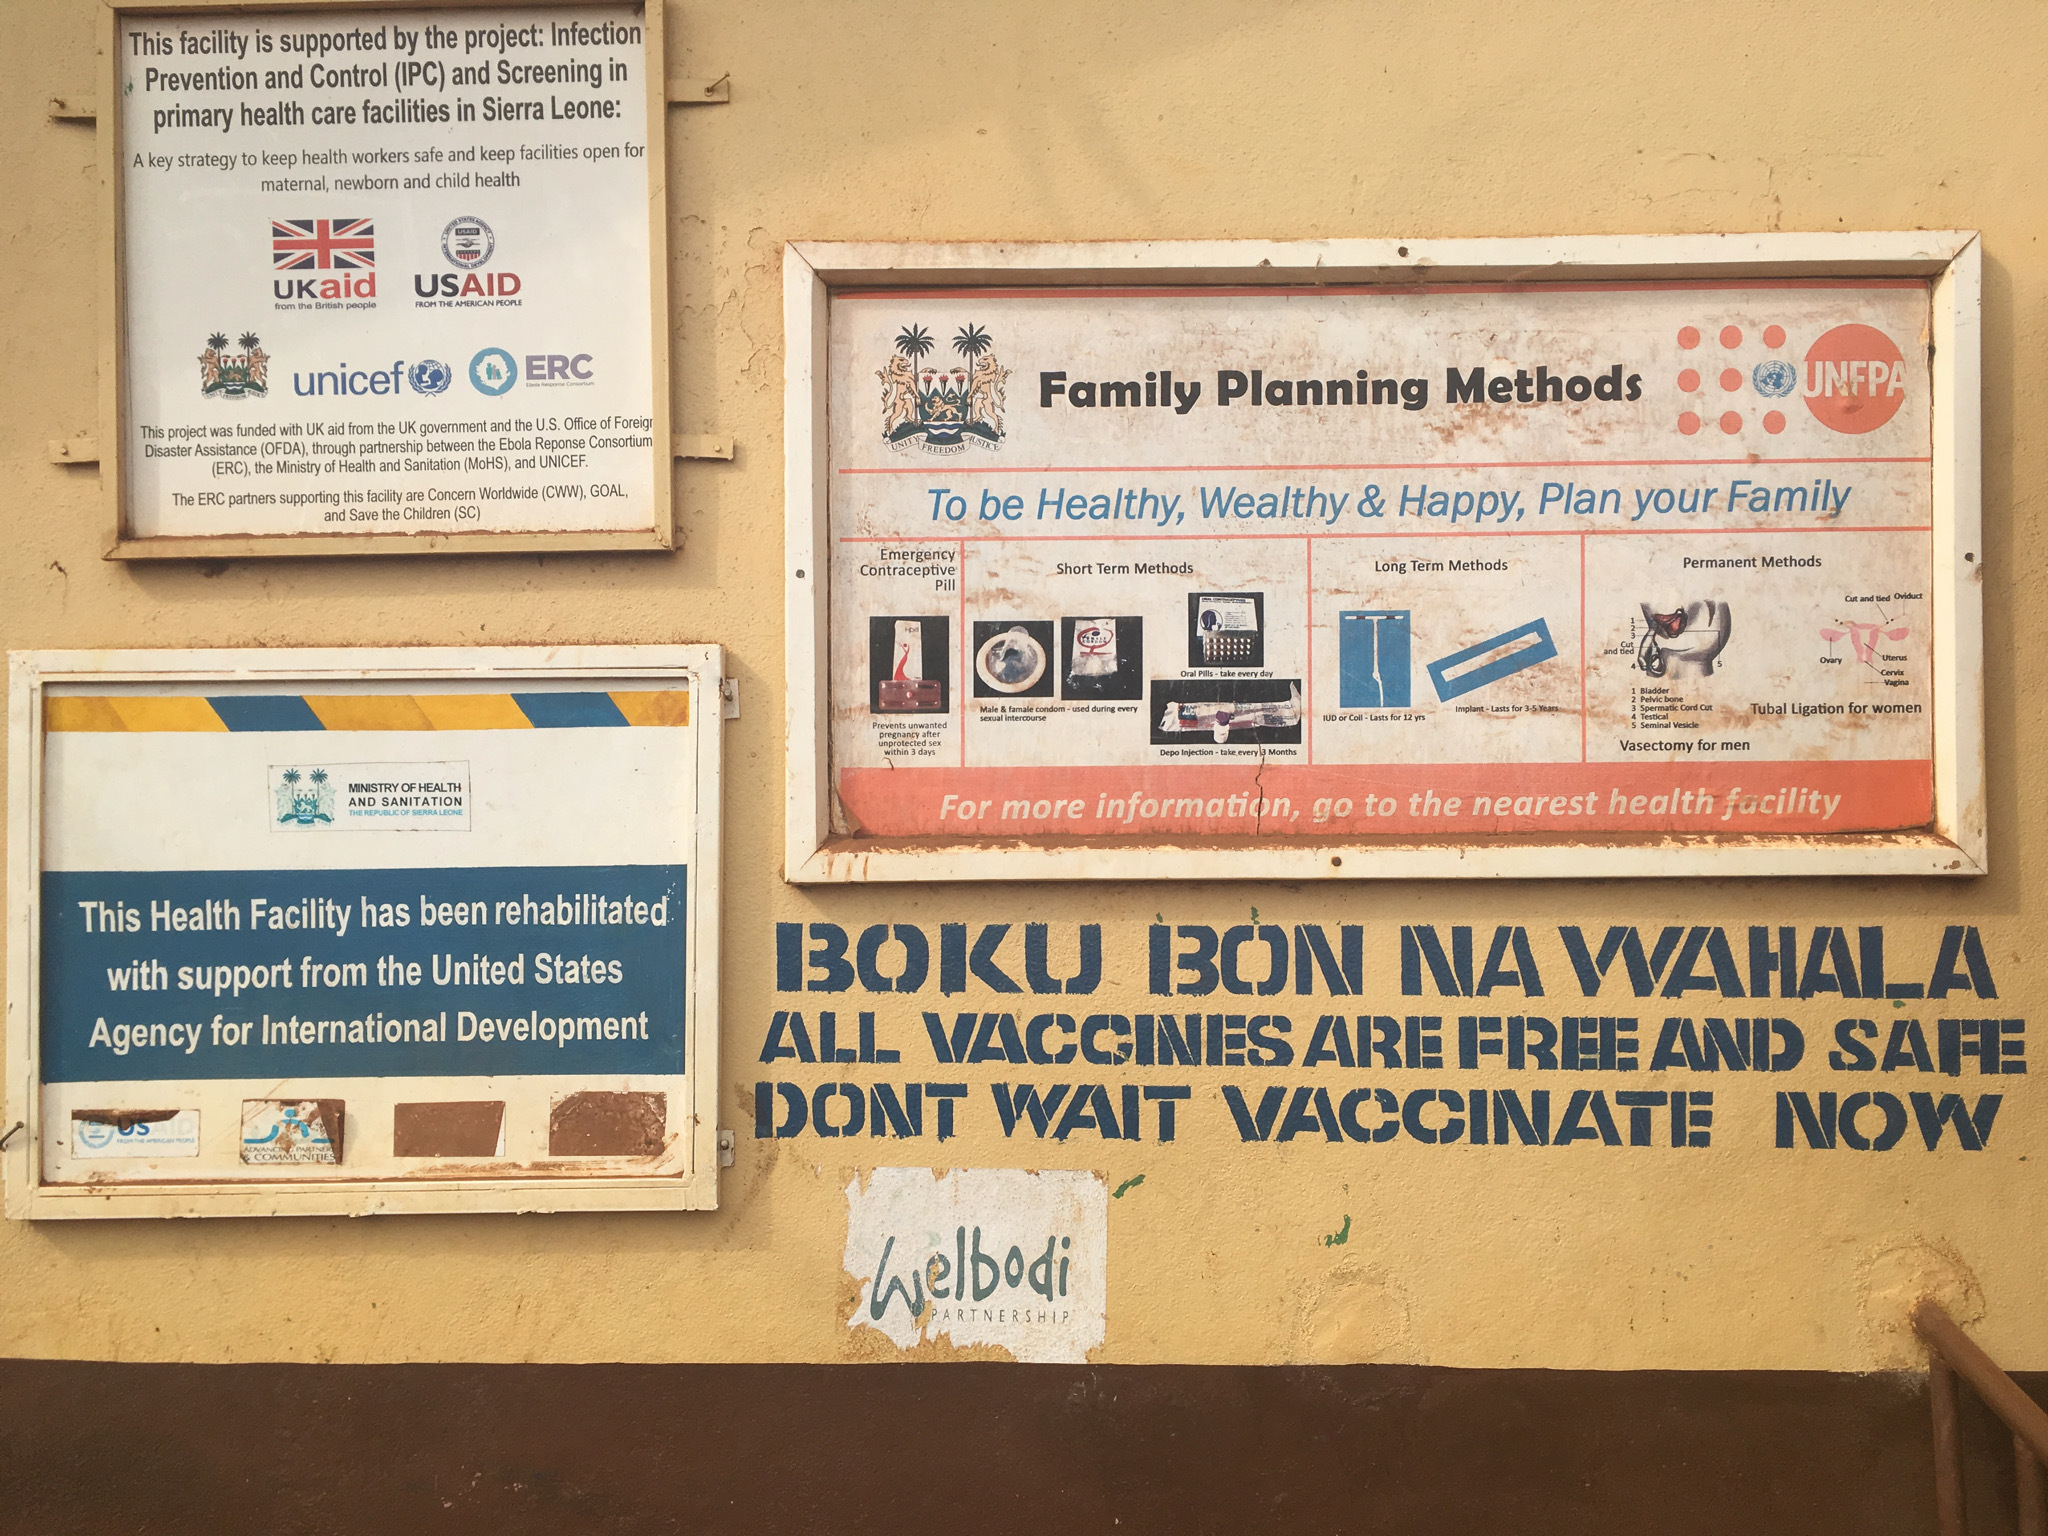 The wall of a health centre with signs, including one advising on available vaccinations